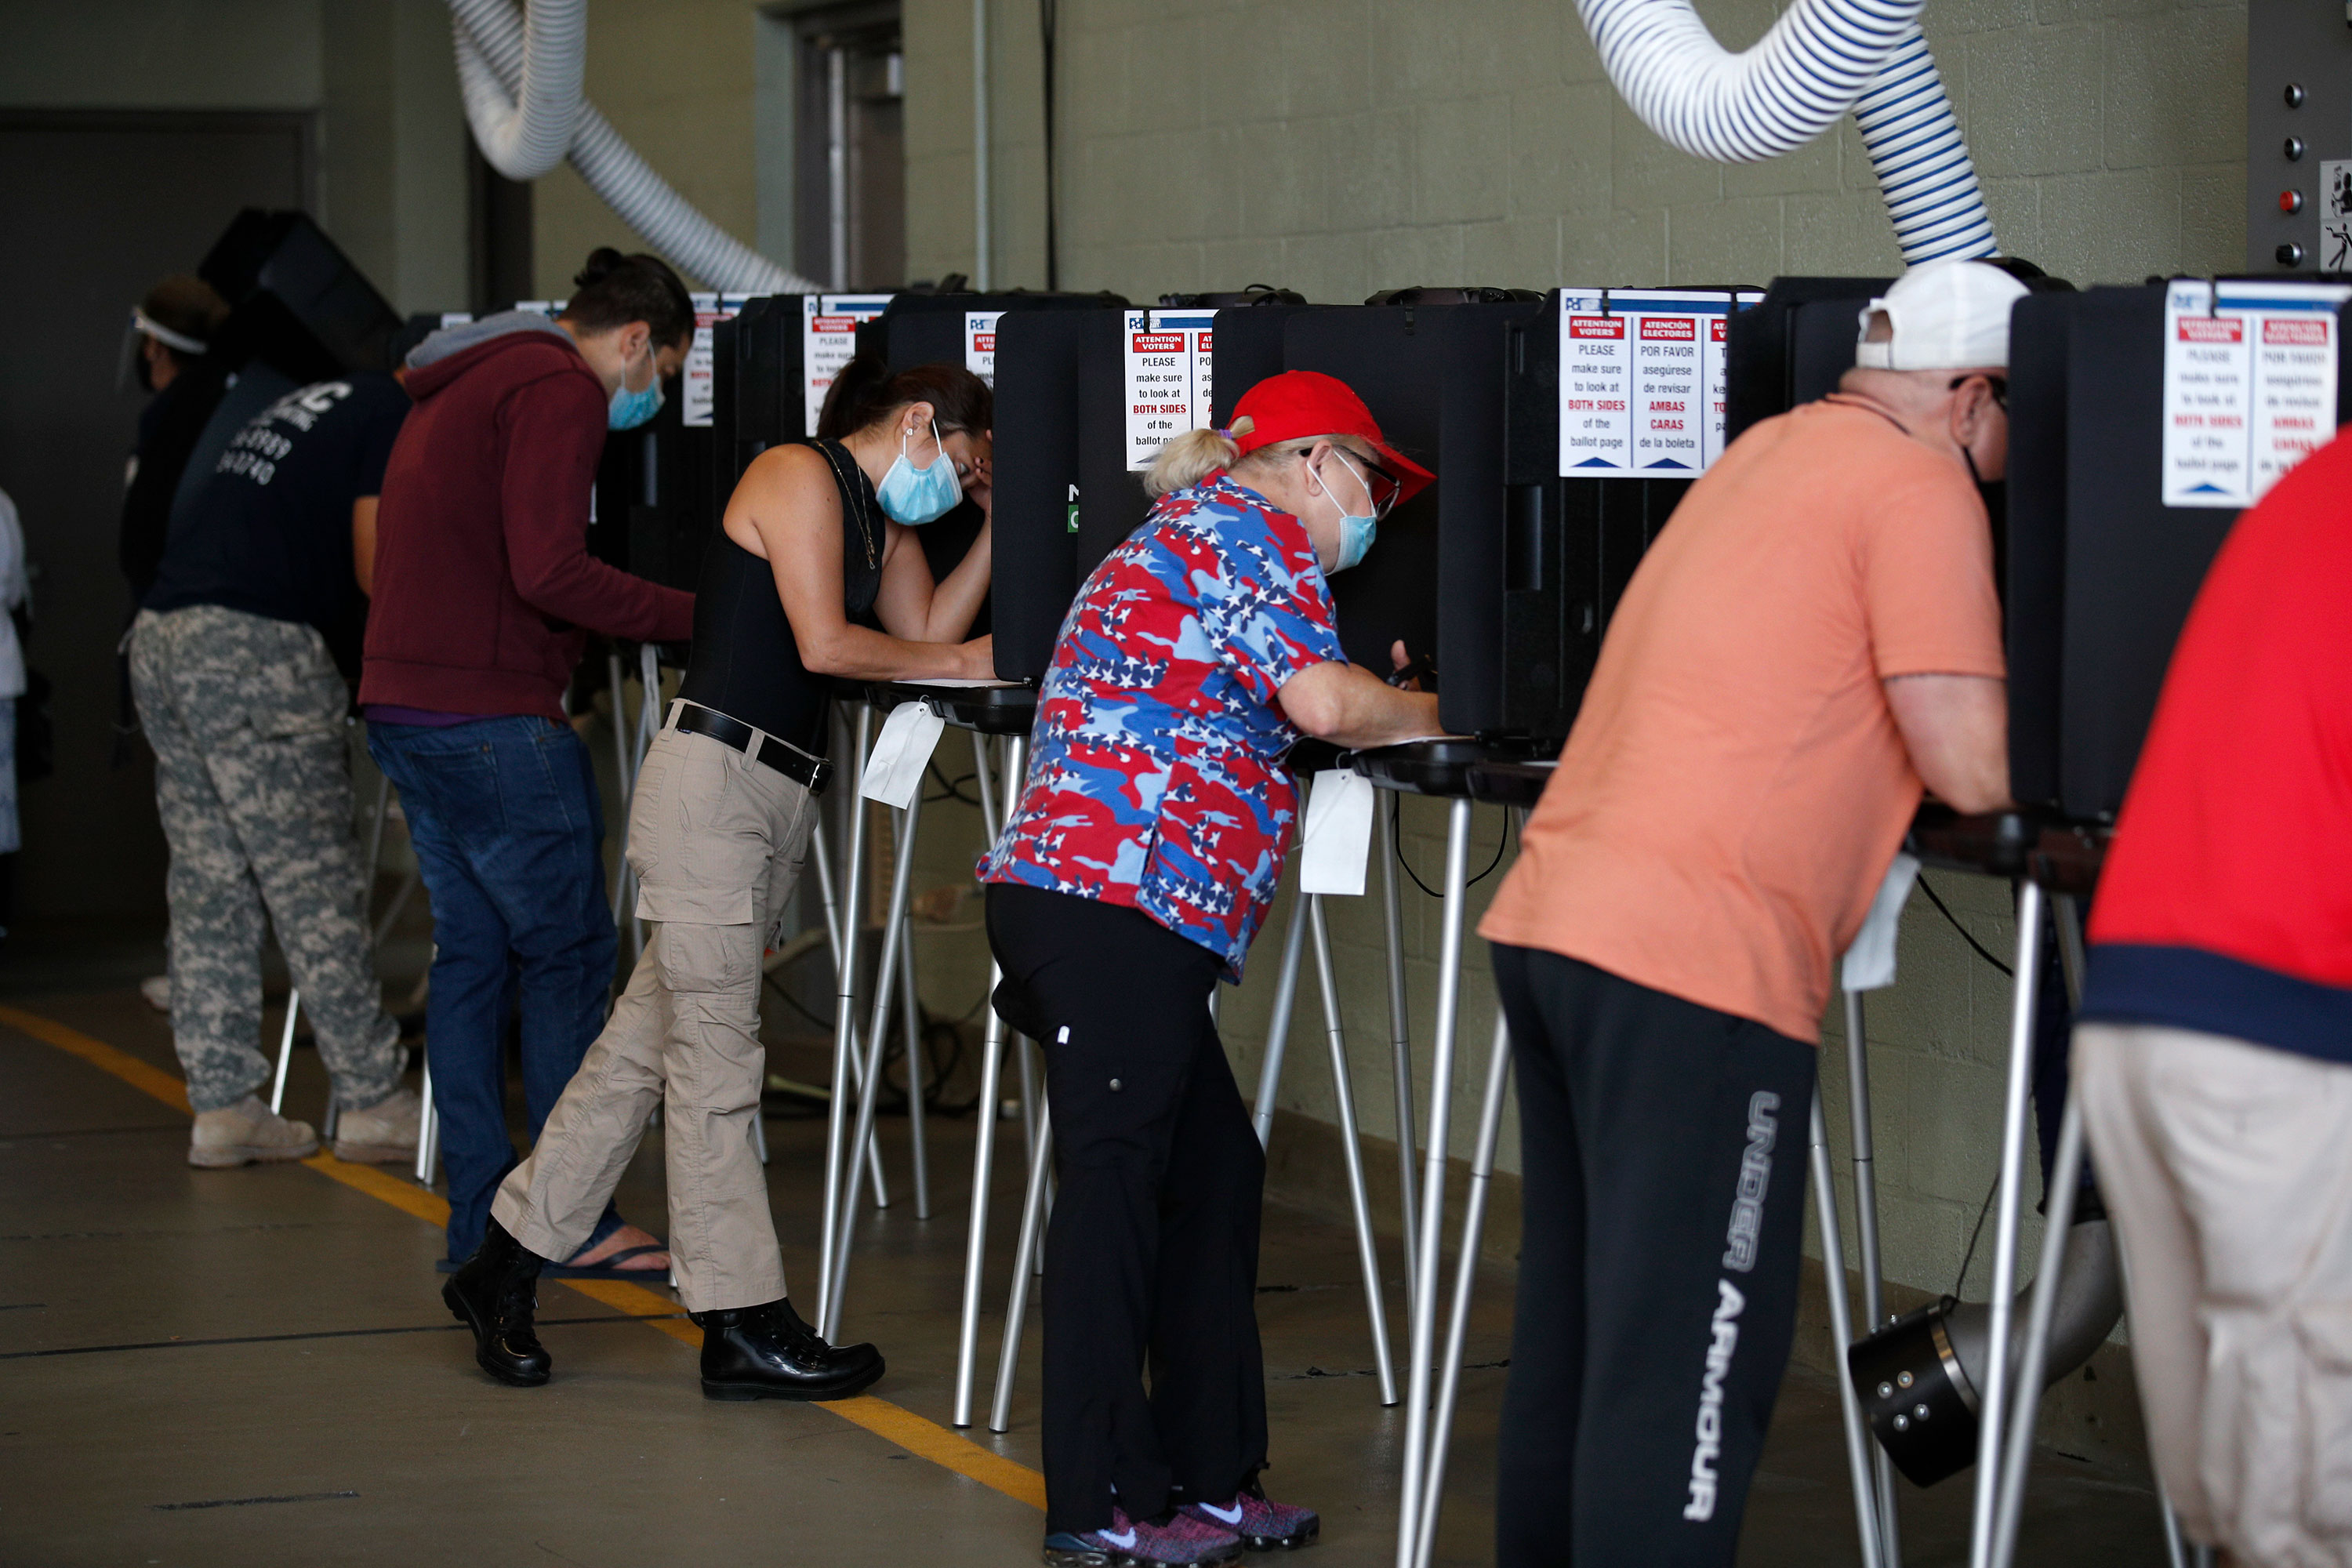 Voters fill out their ballots at a polling place in Miami Beach, Florida, on November 3.